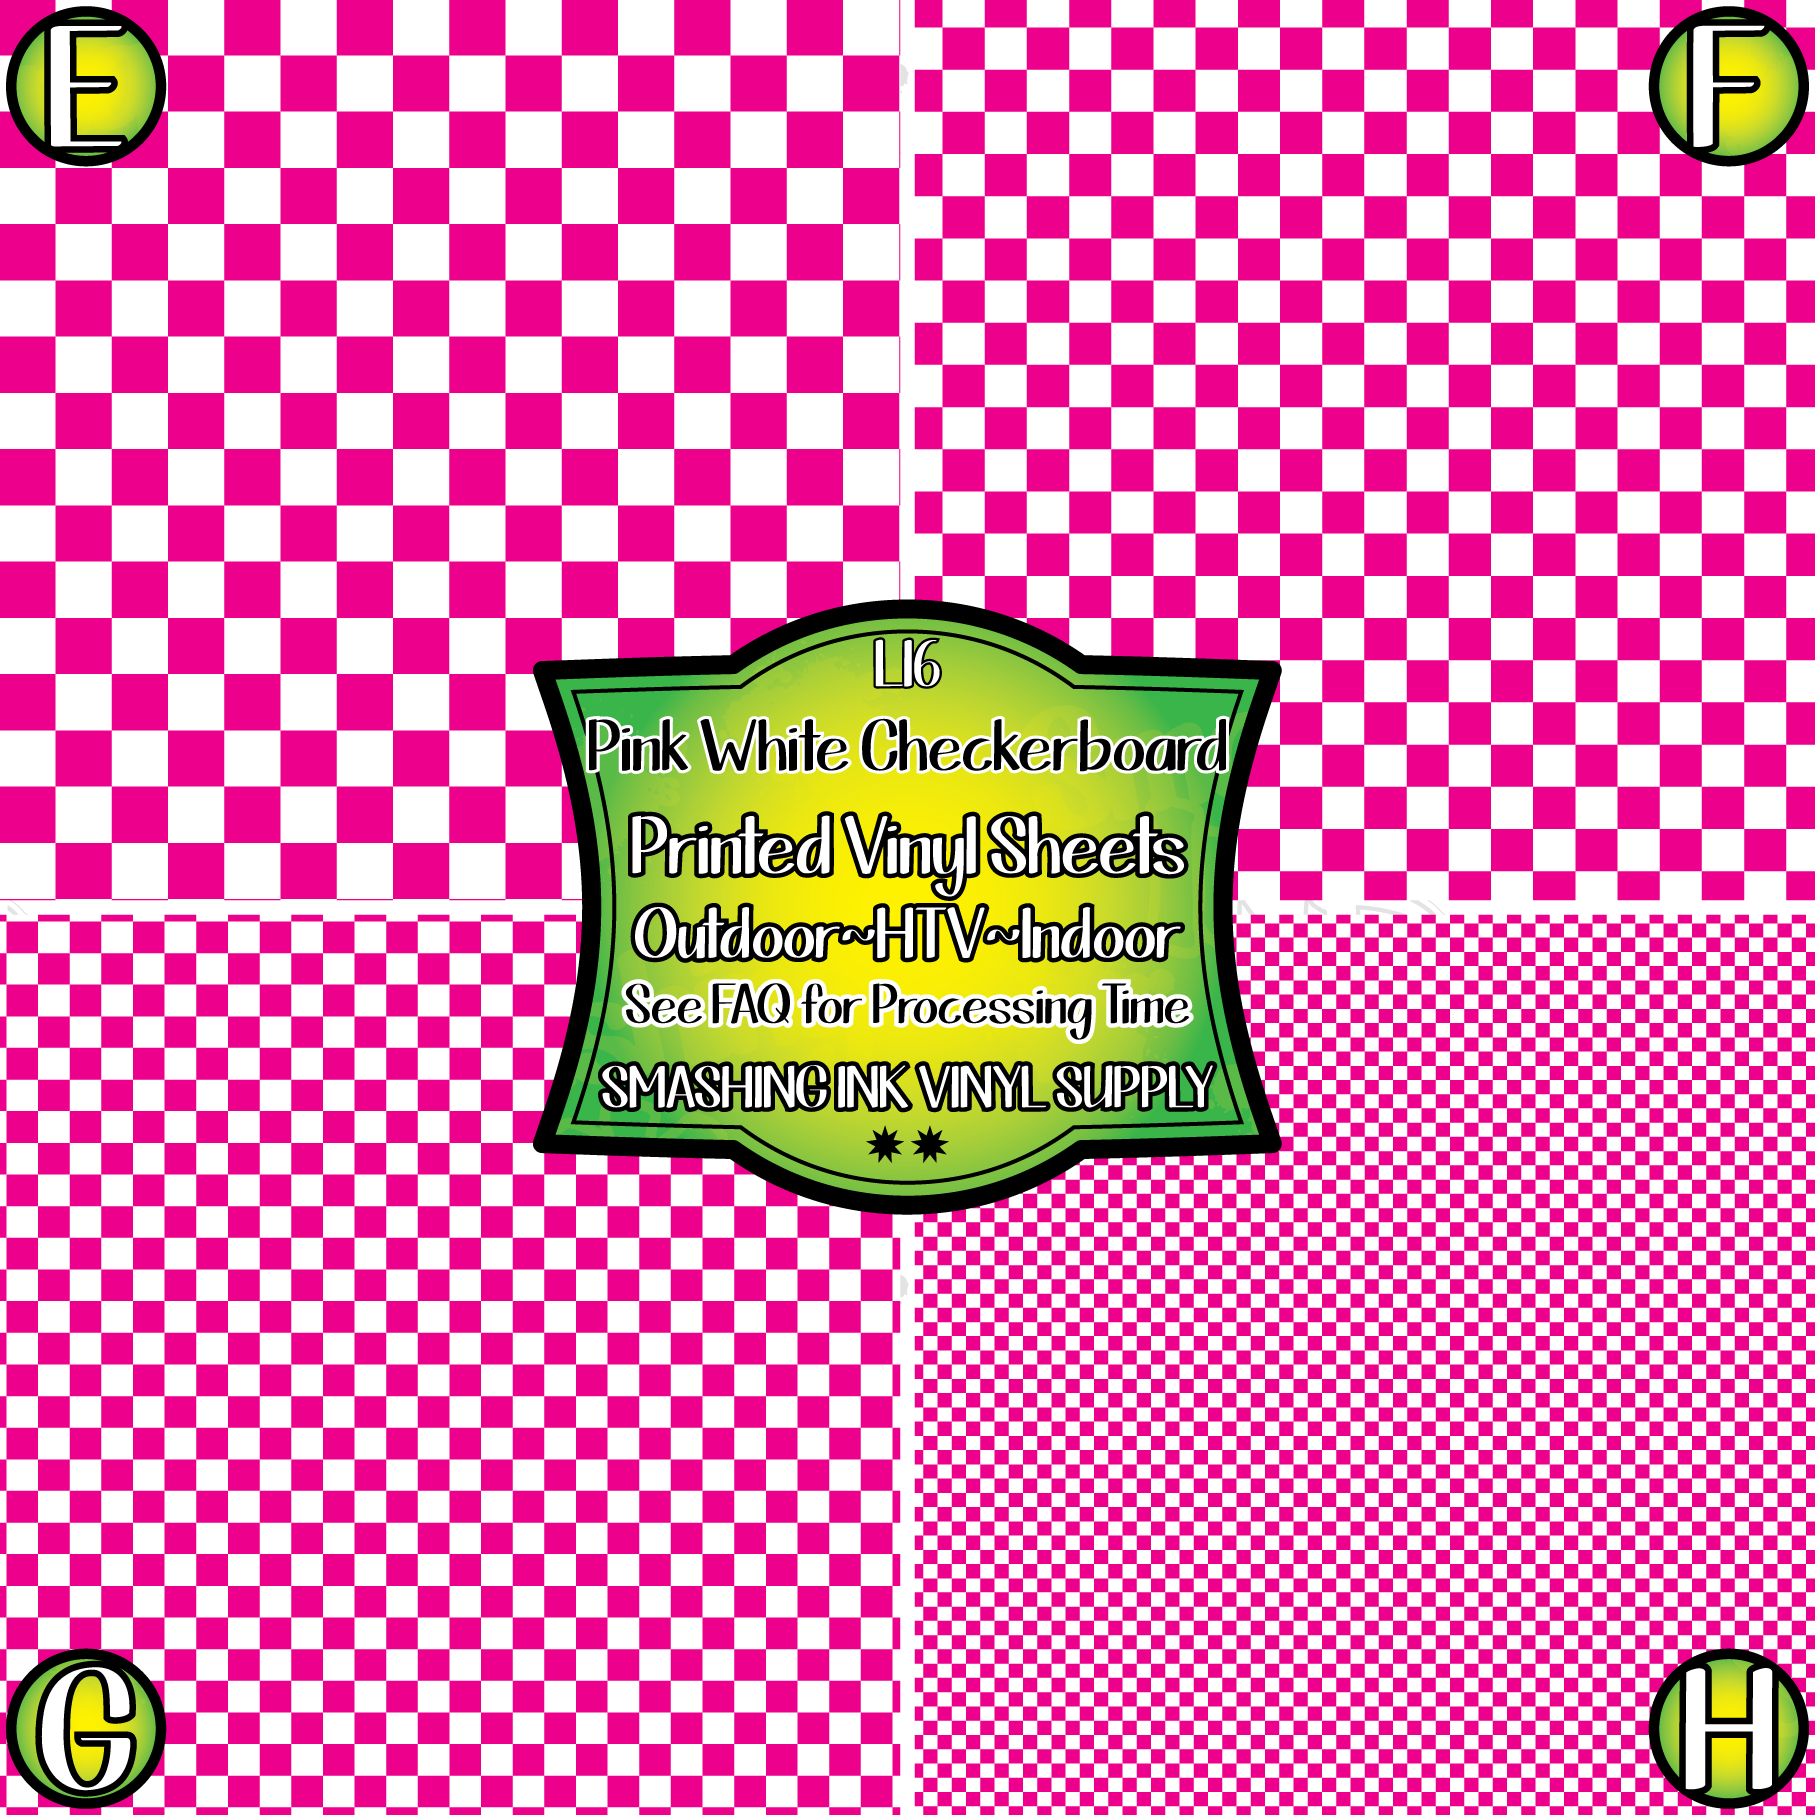 Pink White Checkerboard - Pattern Vinyl (READY IN 3 BUS DAYS)